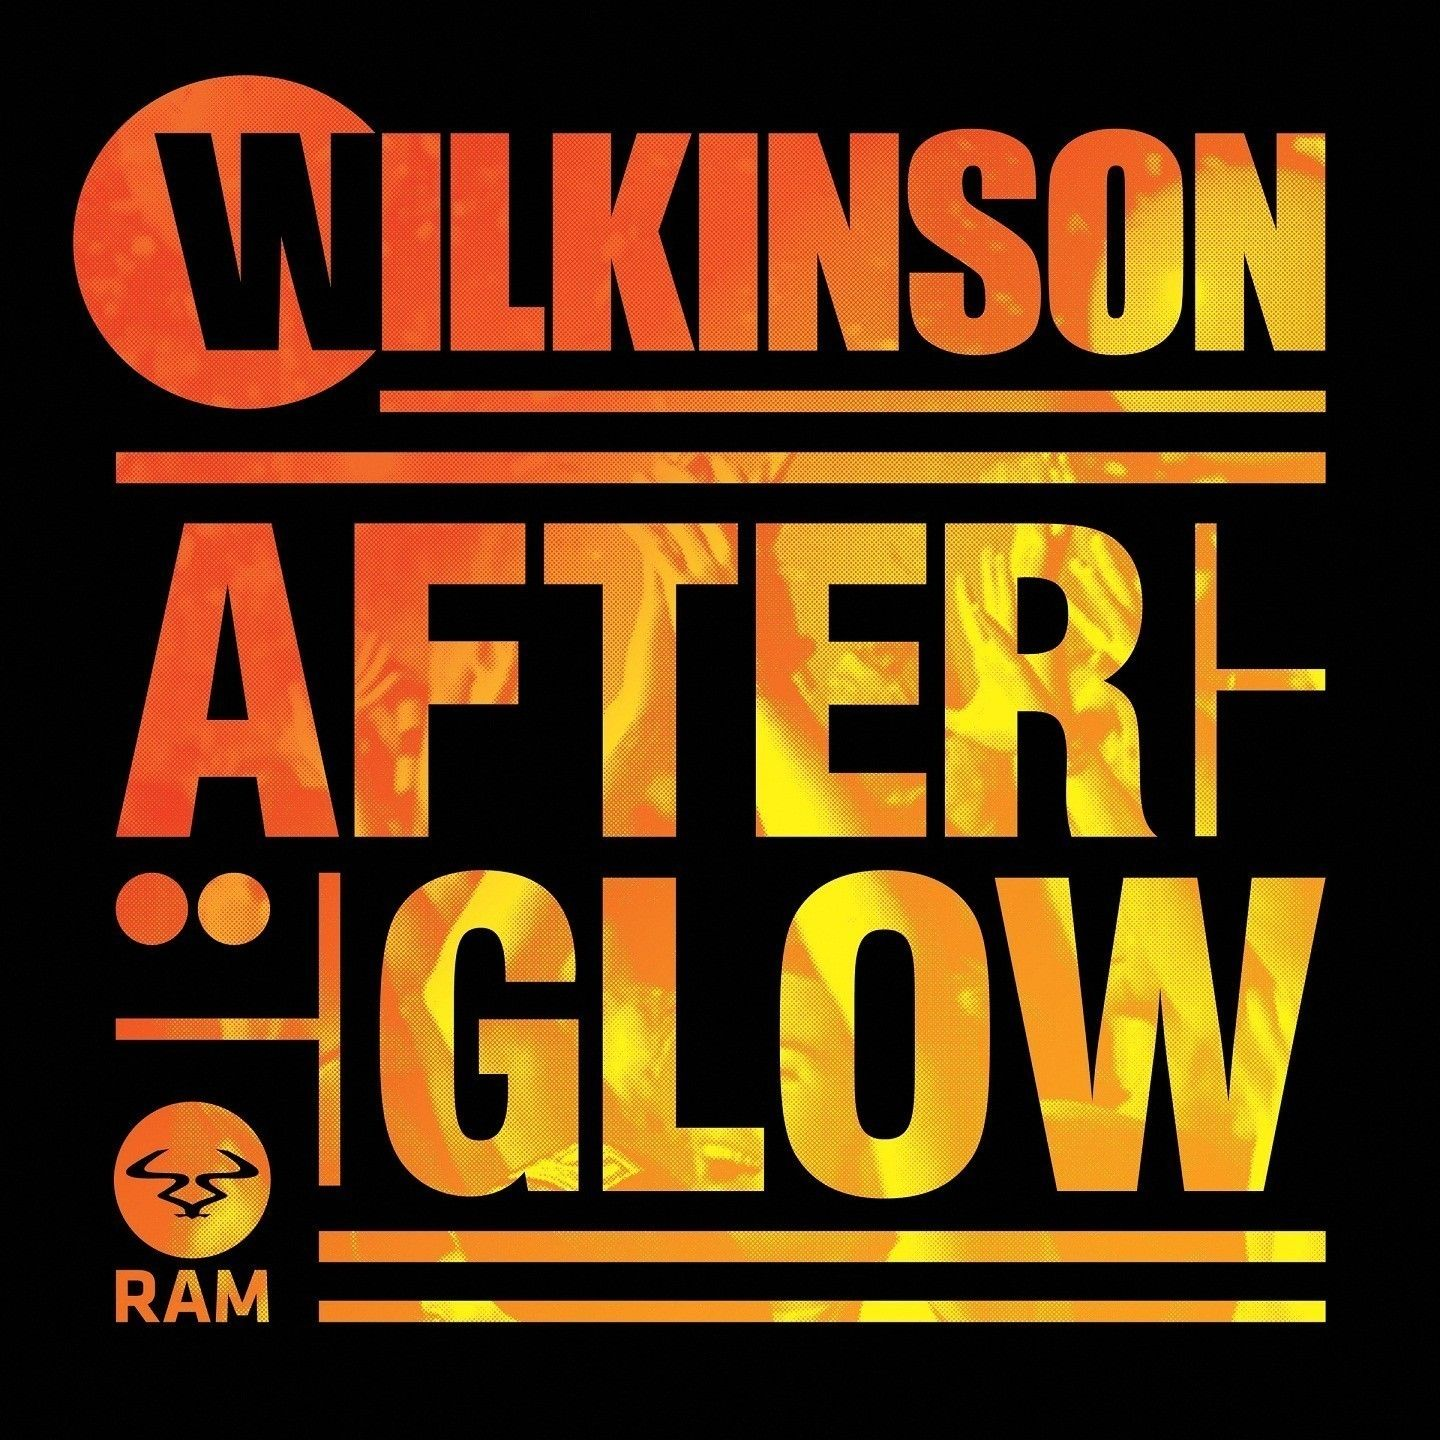 afterglow-packshot-resized.jpg.jpeg